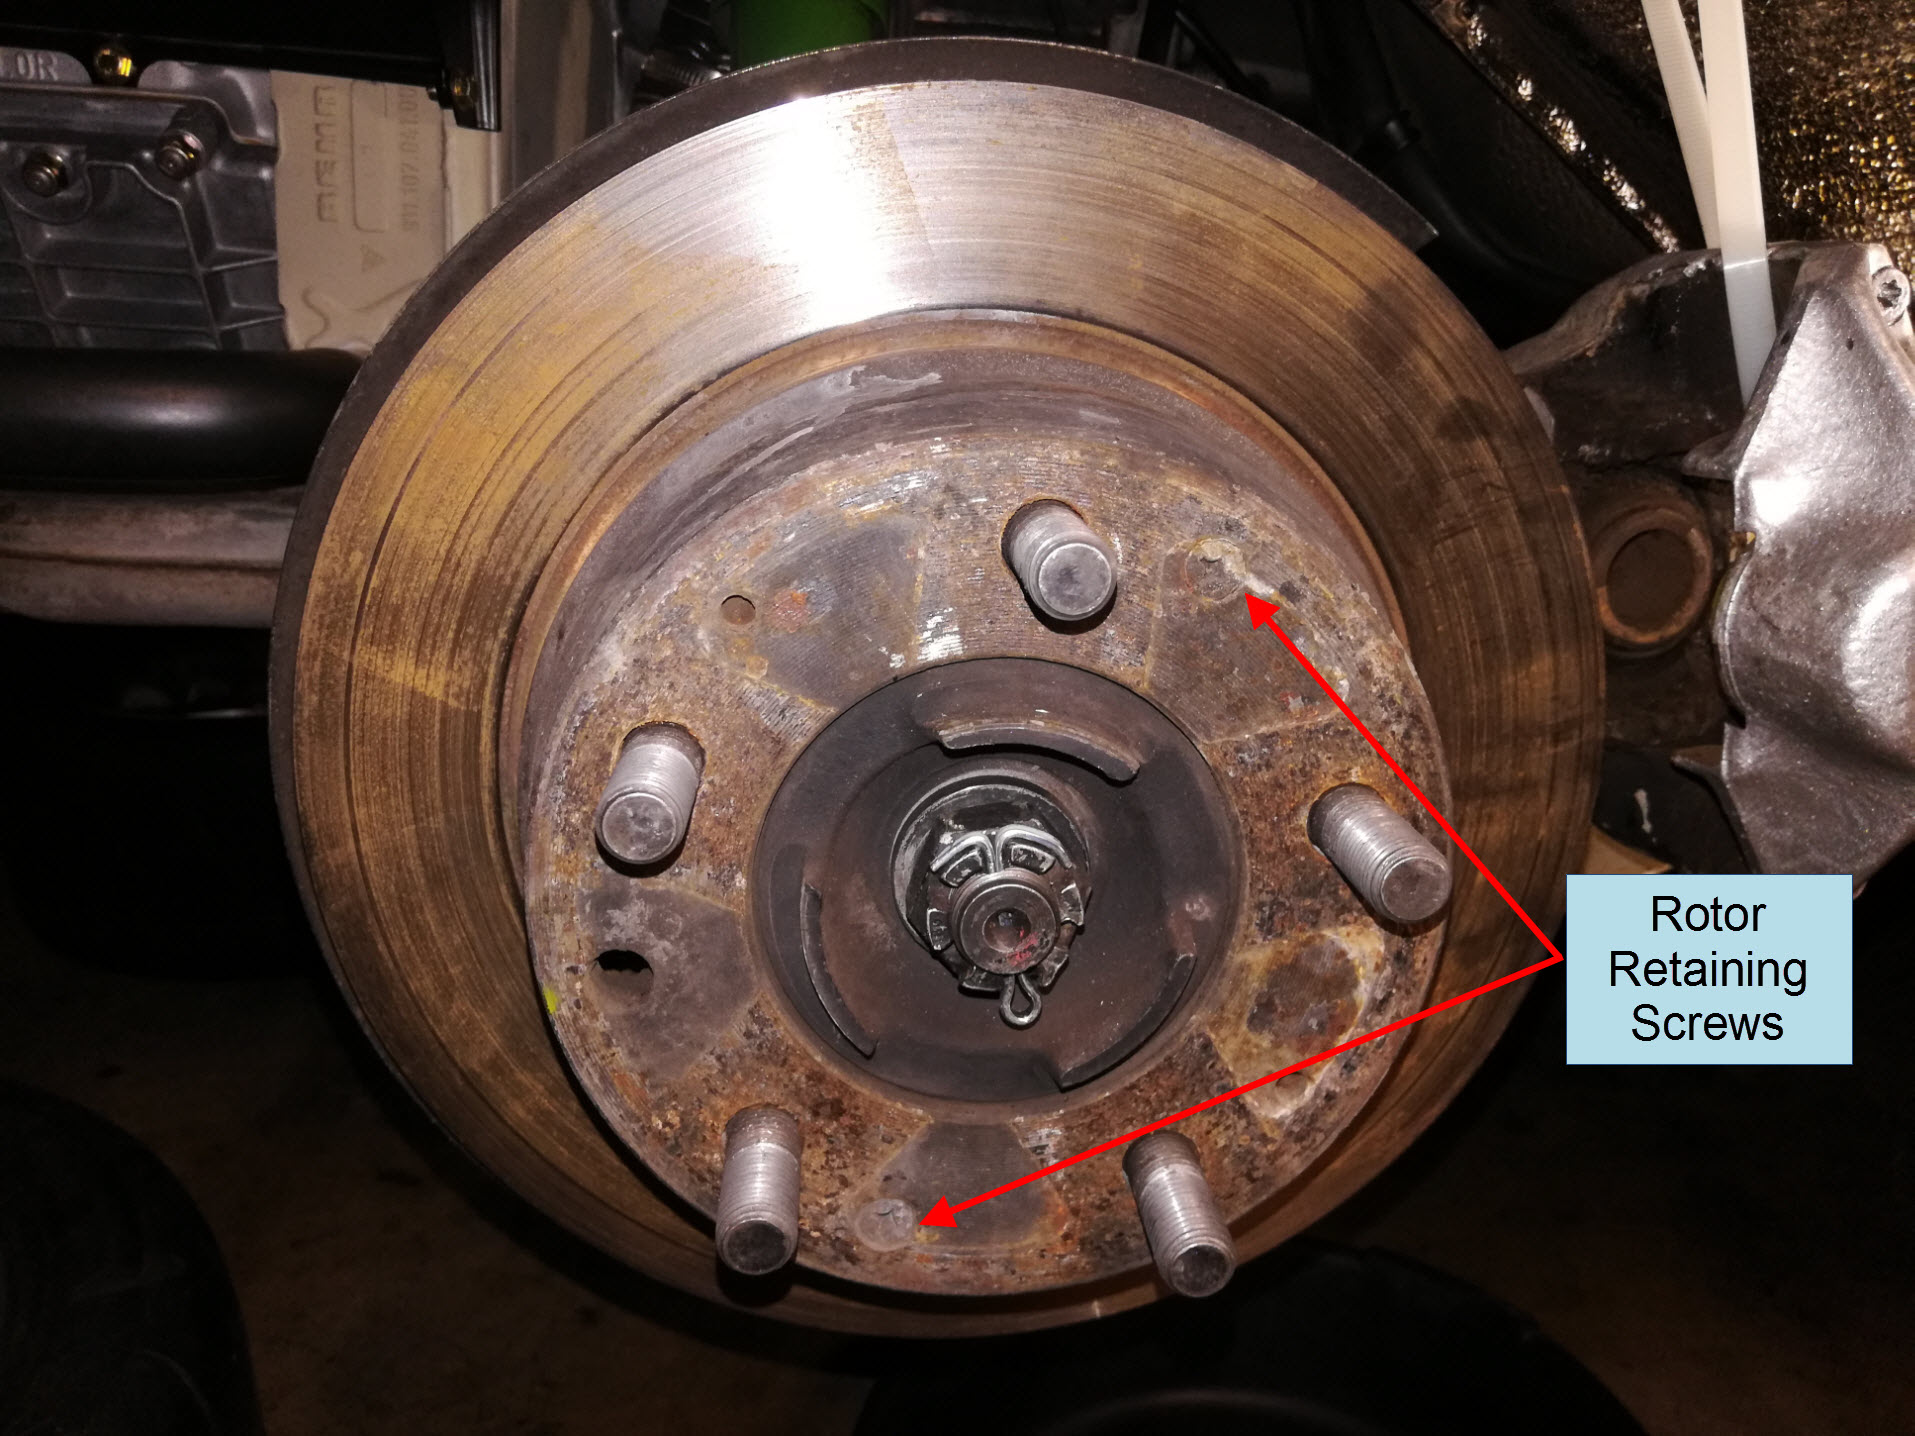 Air-cooled Porsche 911 rear brake rotor removal.